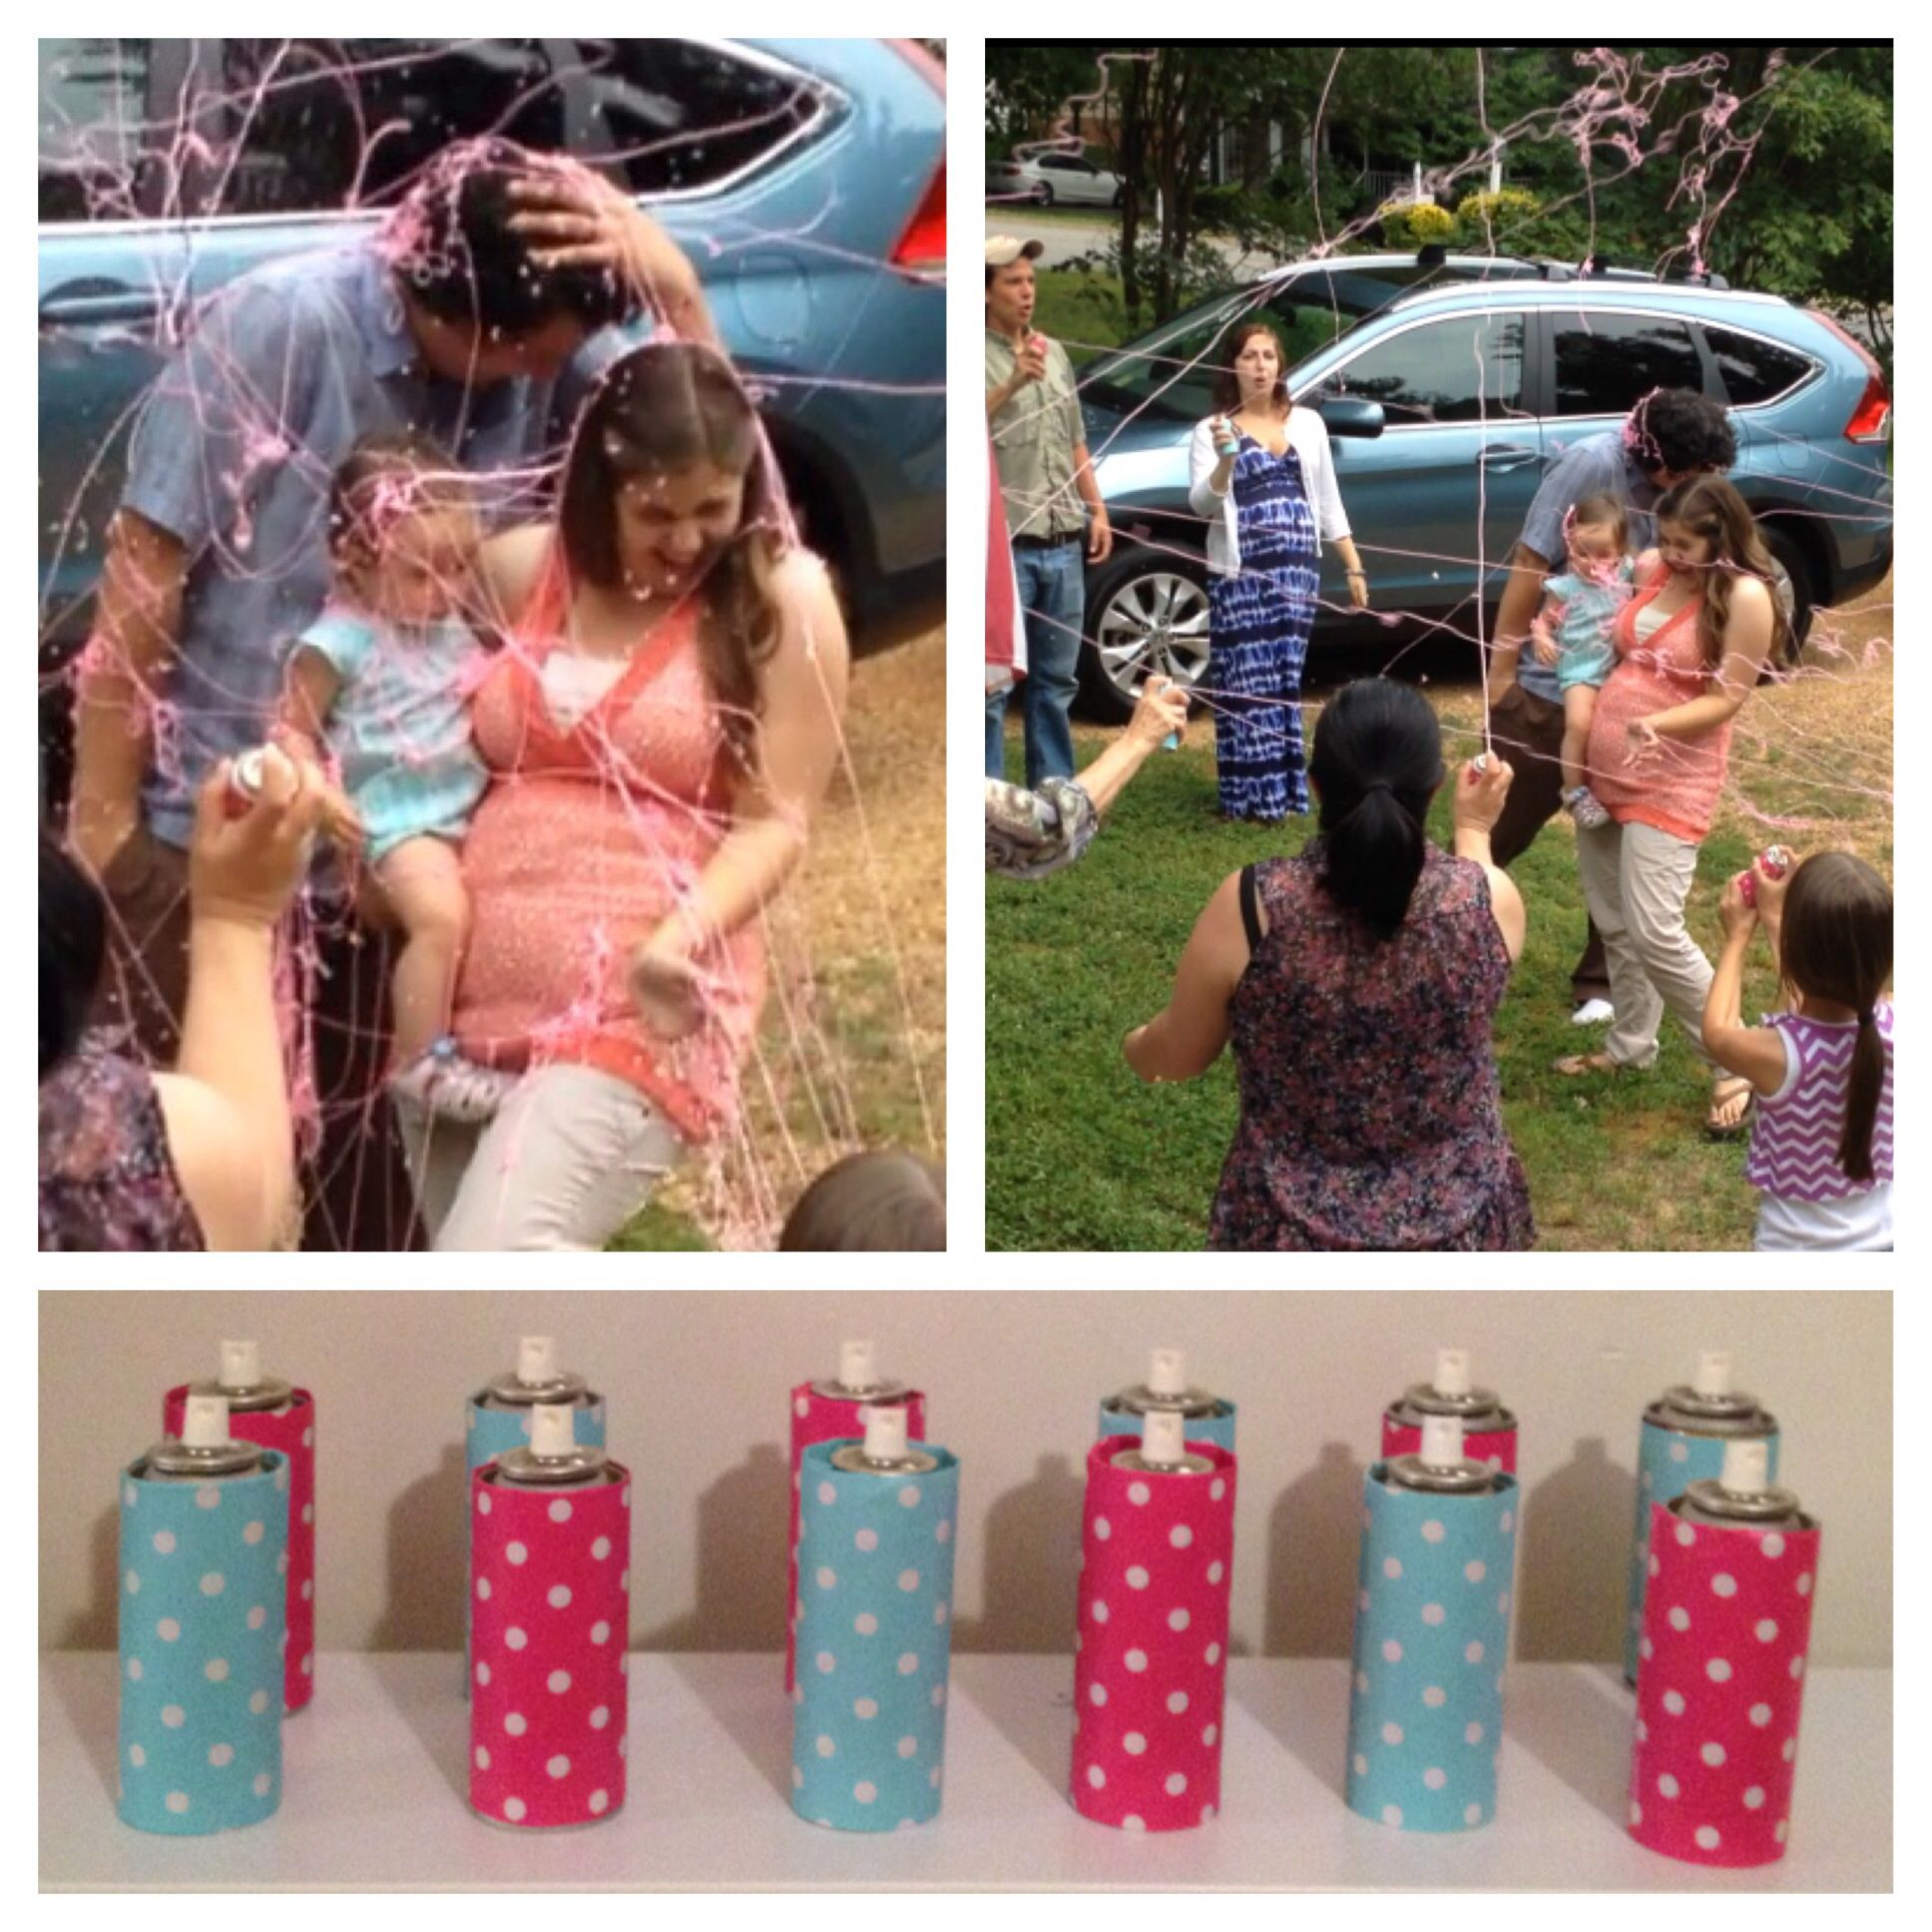 Silly string gender reveal We bought cans of silly string from the